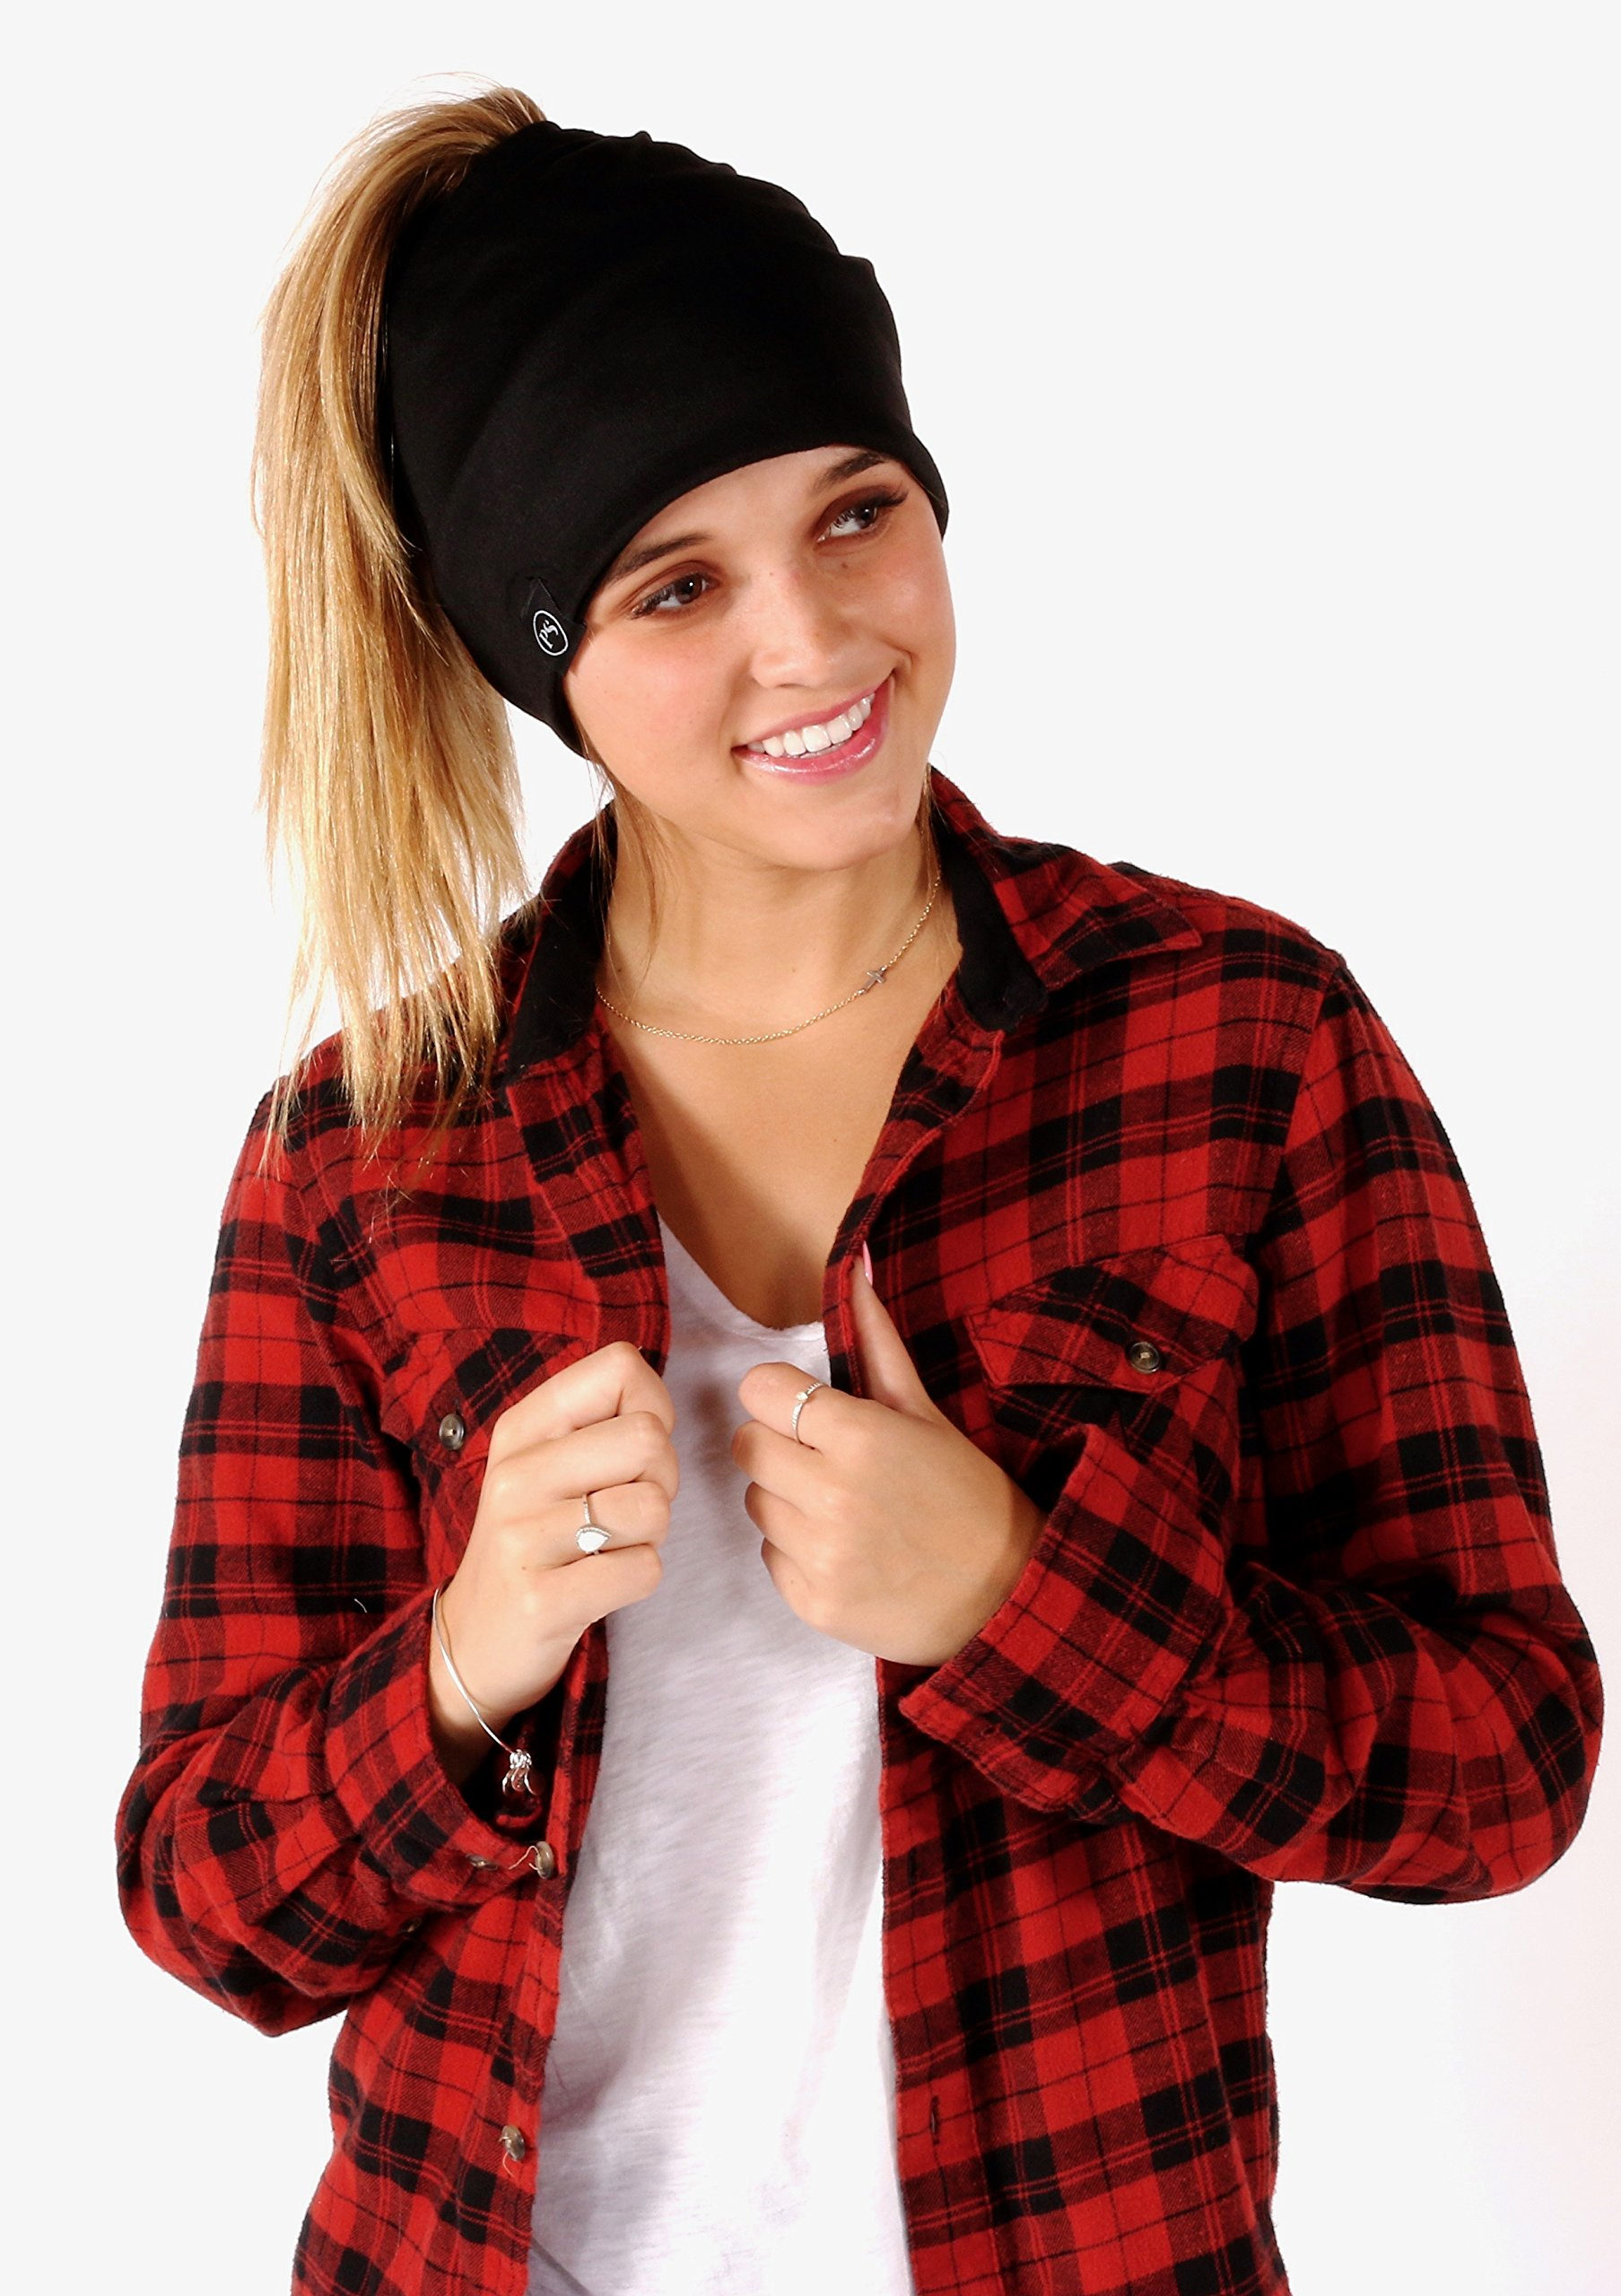 Peek a Boo Women's Beanie Slouchy Beanie with Hole for Pony Tail or Sloppy Bun perfect for Work Out by Pretty Simple (Black) by Pretty Simple (Image #9)